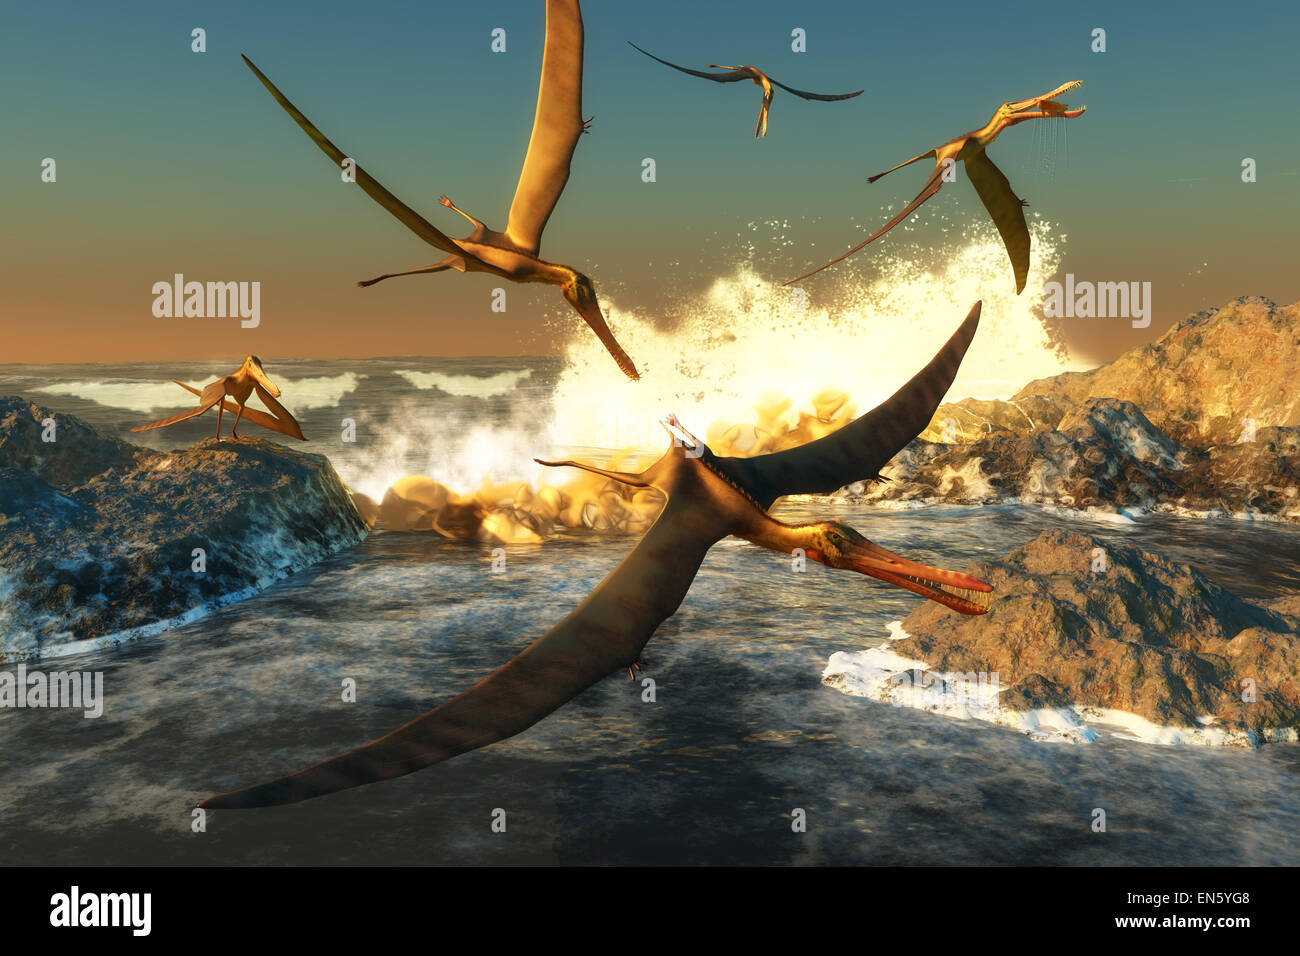 A flock of Anhanguera flying dinosaur reptiles catch fish off a rocky coast in prehistoric times. Stock Photo